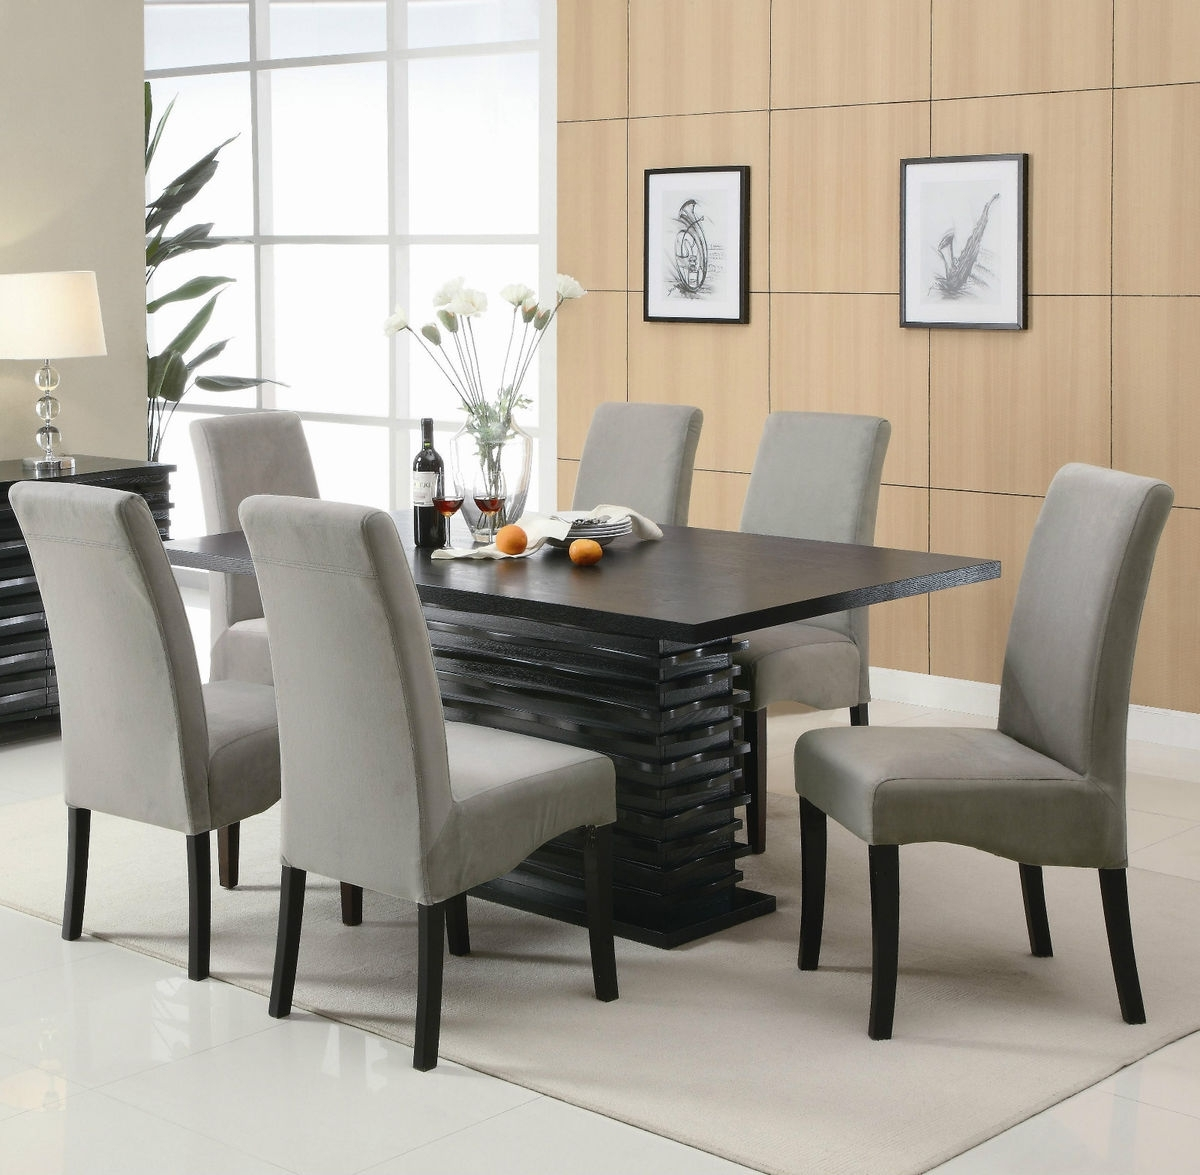 Decorating Modern Dining Room Chairs — Bluehawkboosters Home Design Within Current Modern Dining Suites (Gallery 17 of 25)